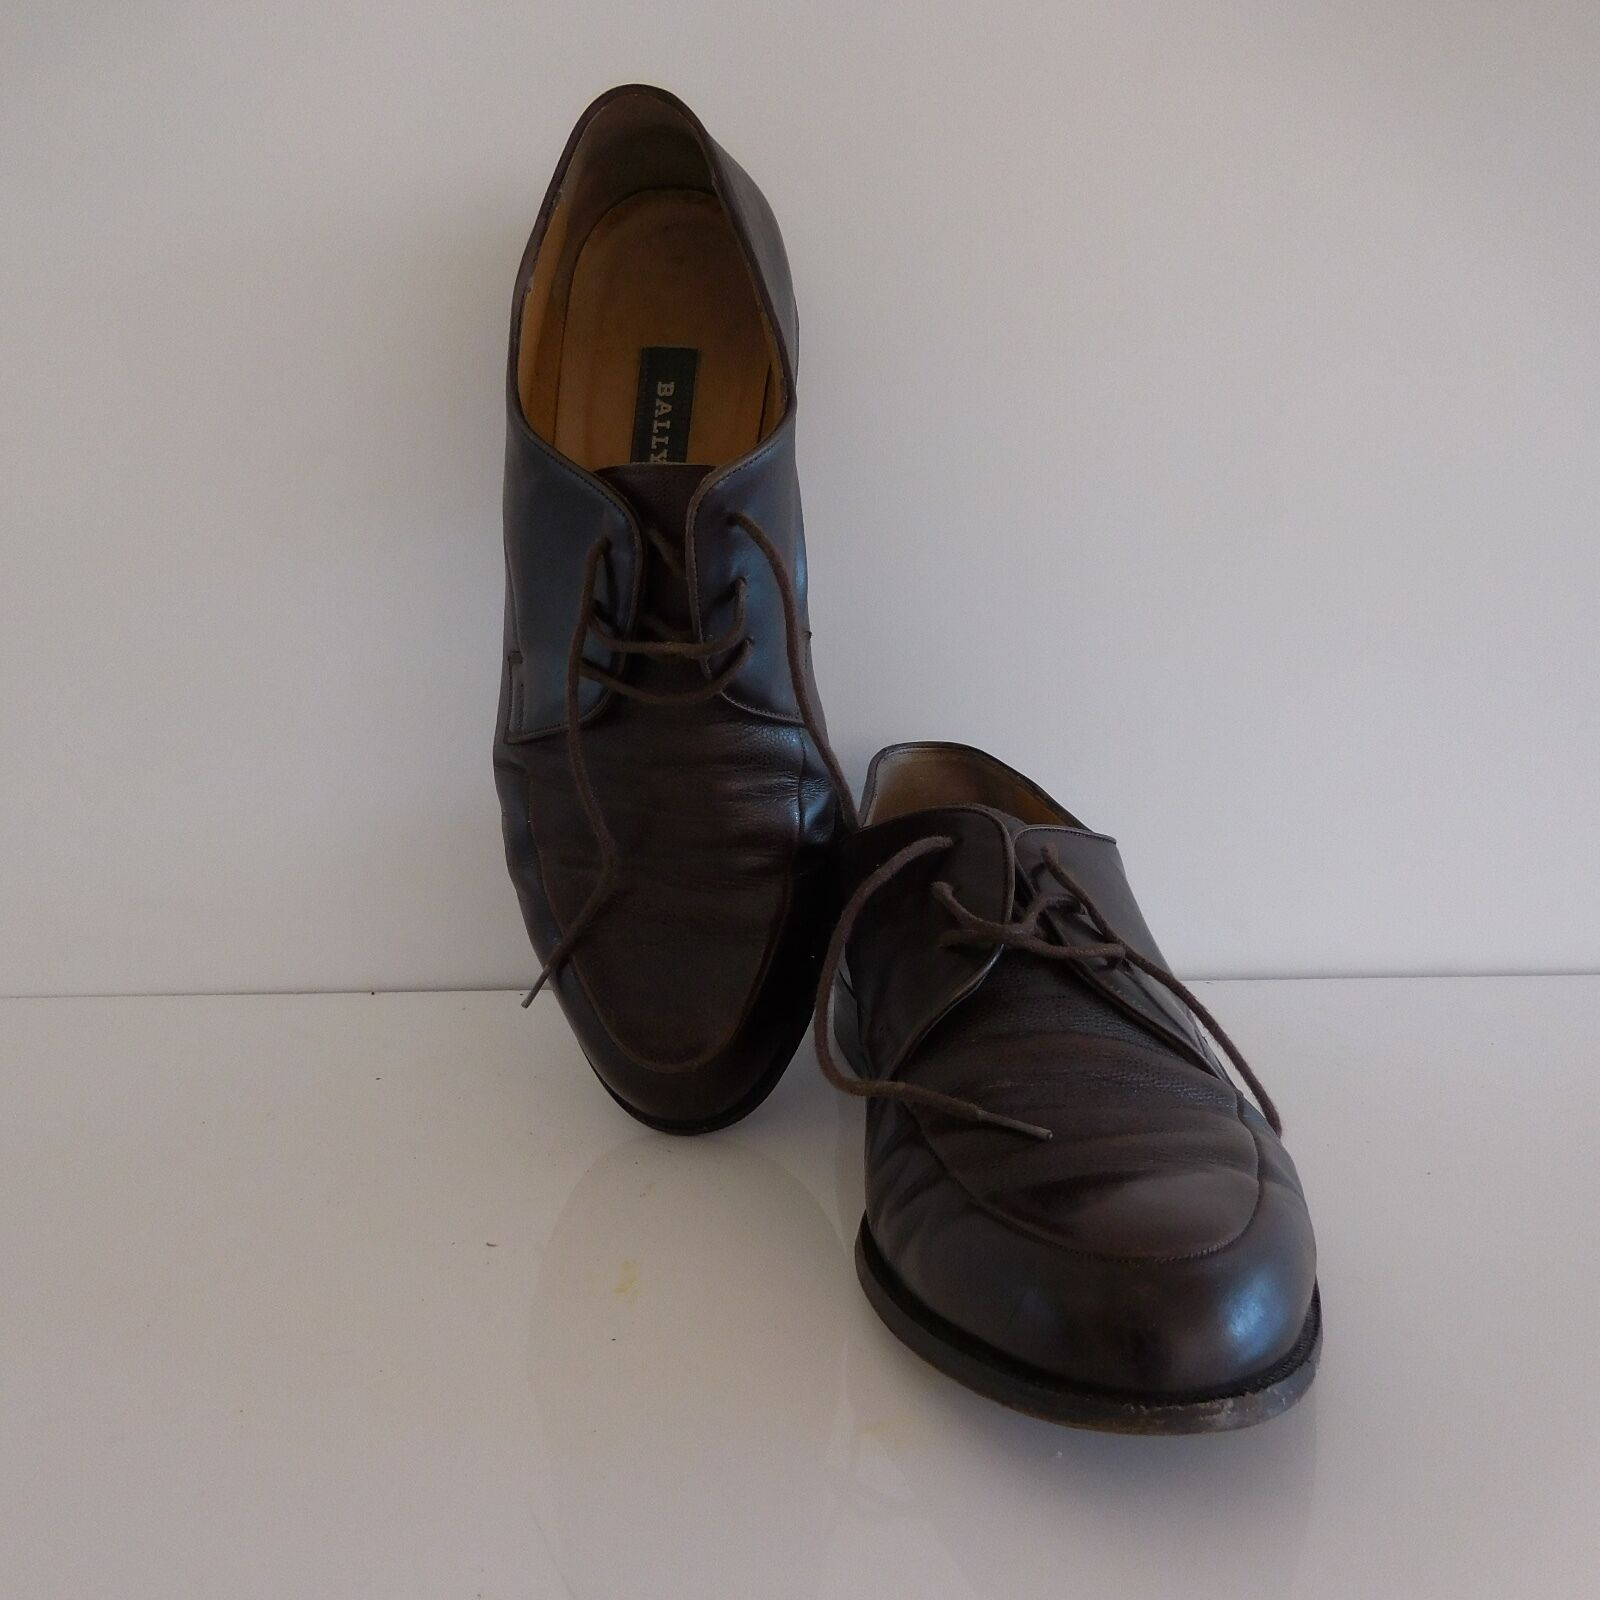 shoes BALLY MARTORE cuir vintage XXème made in